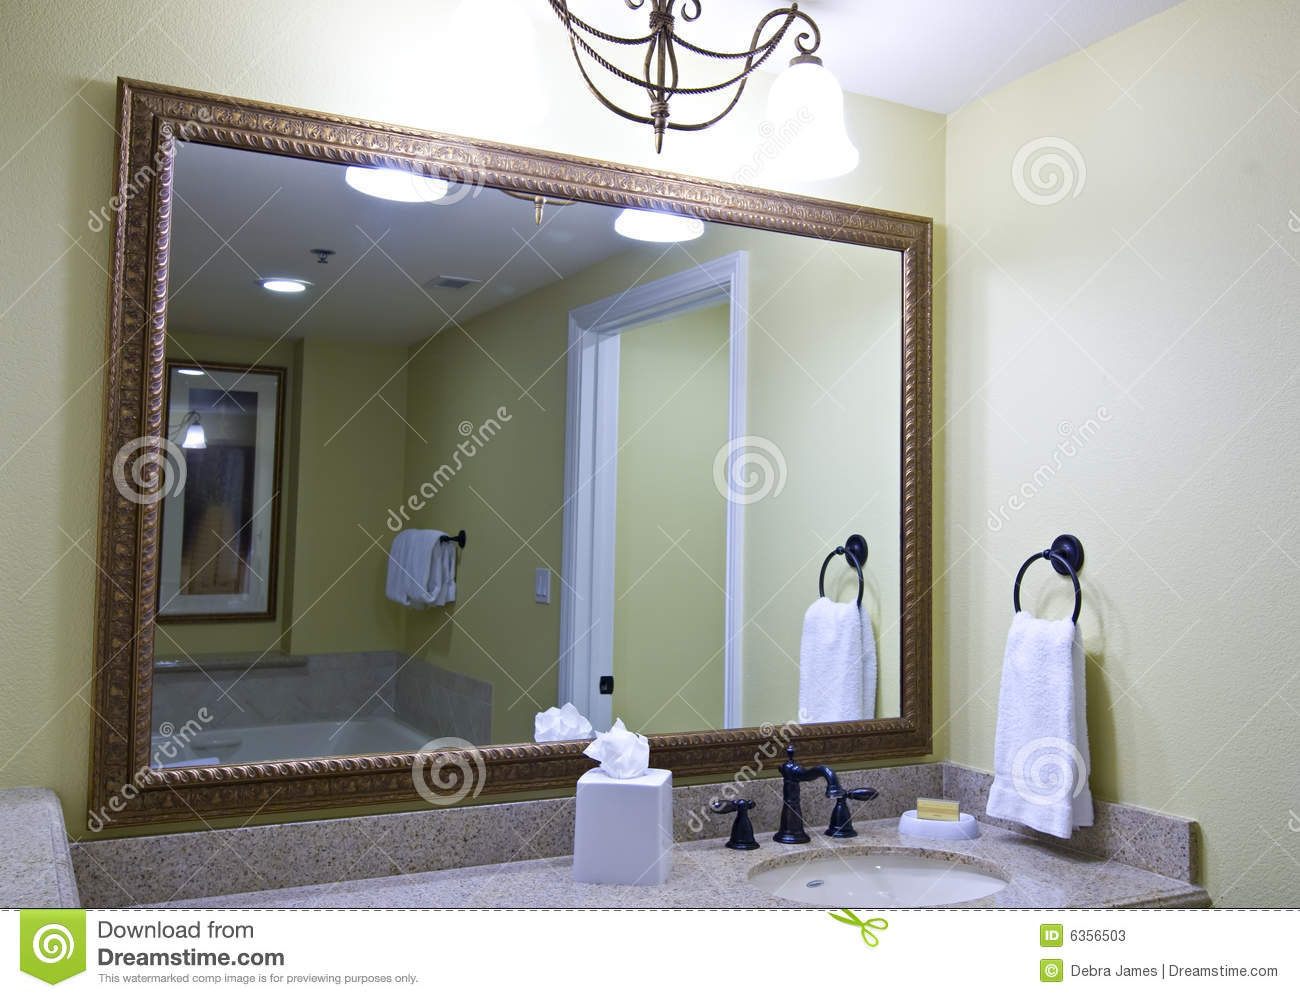 large framed mirror for bathroom large bathroom mirror stock image image of reflect towel 23616